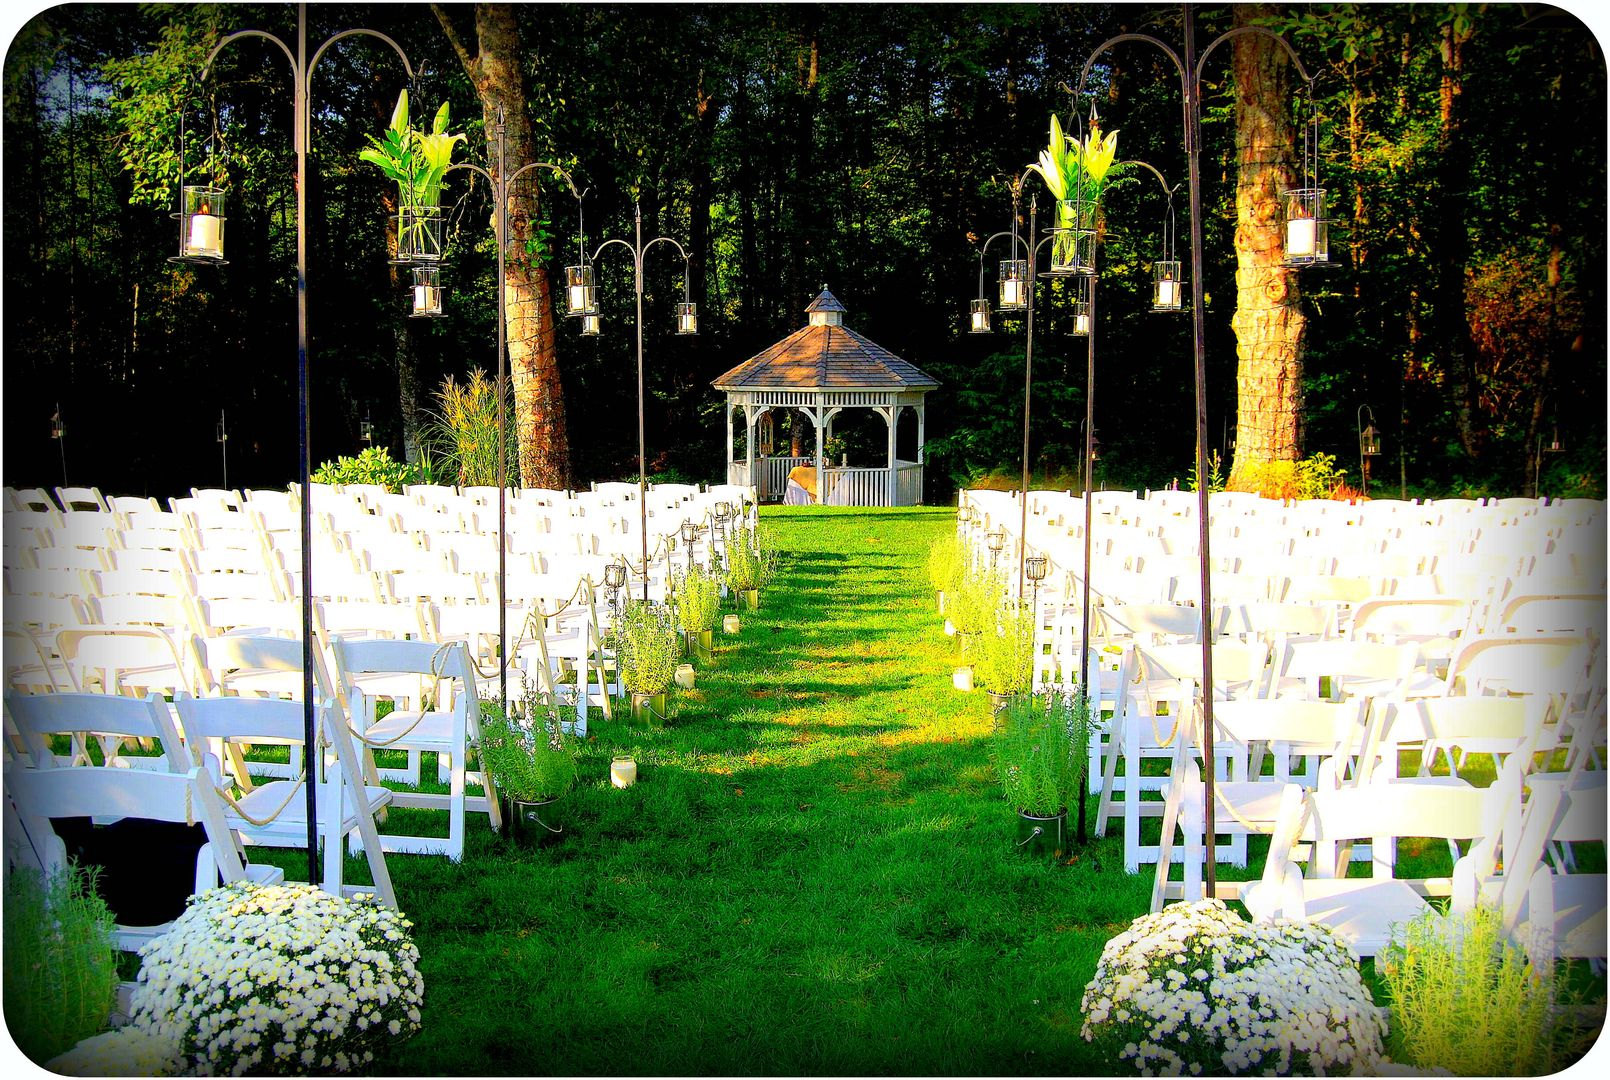 Knollcrest gardens outdoor wedding venues is located in